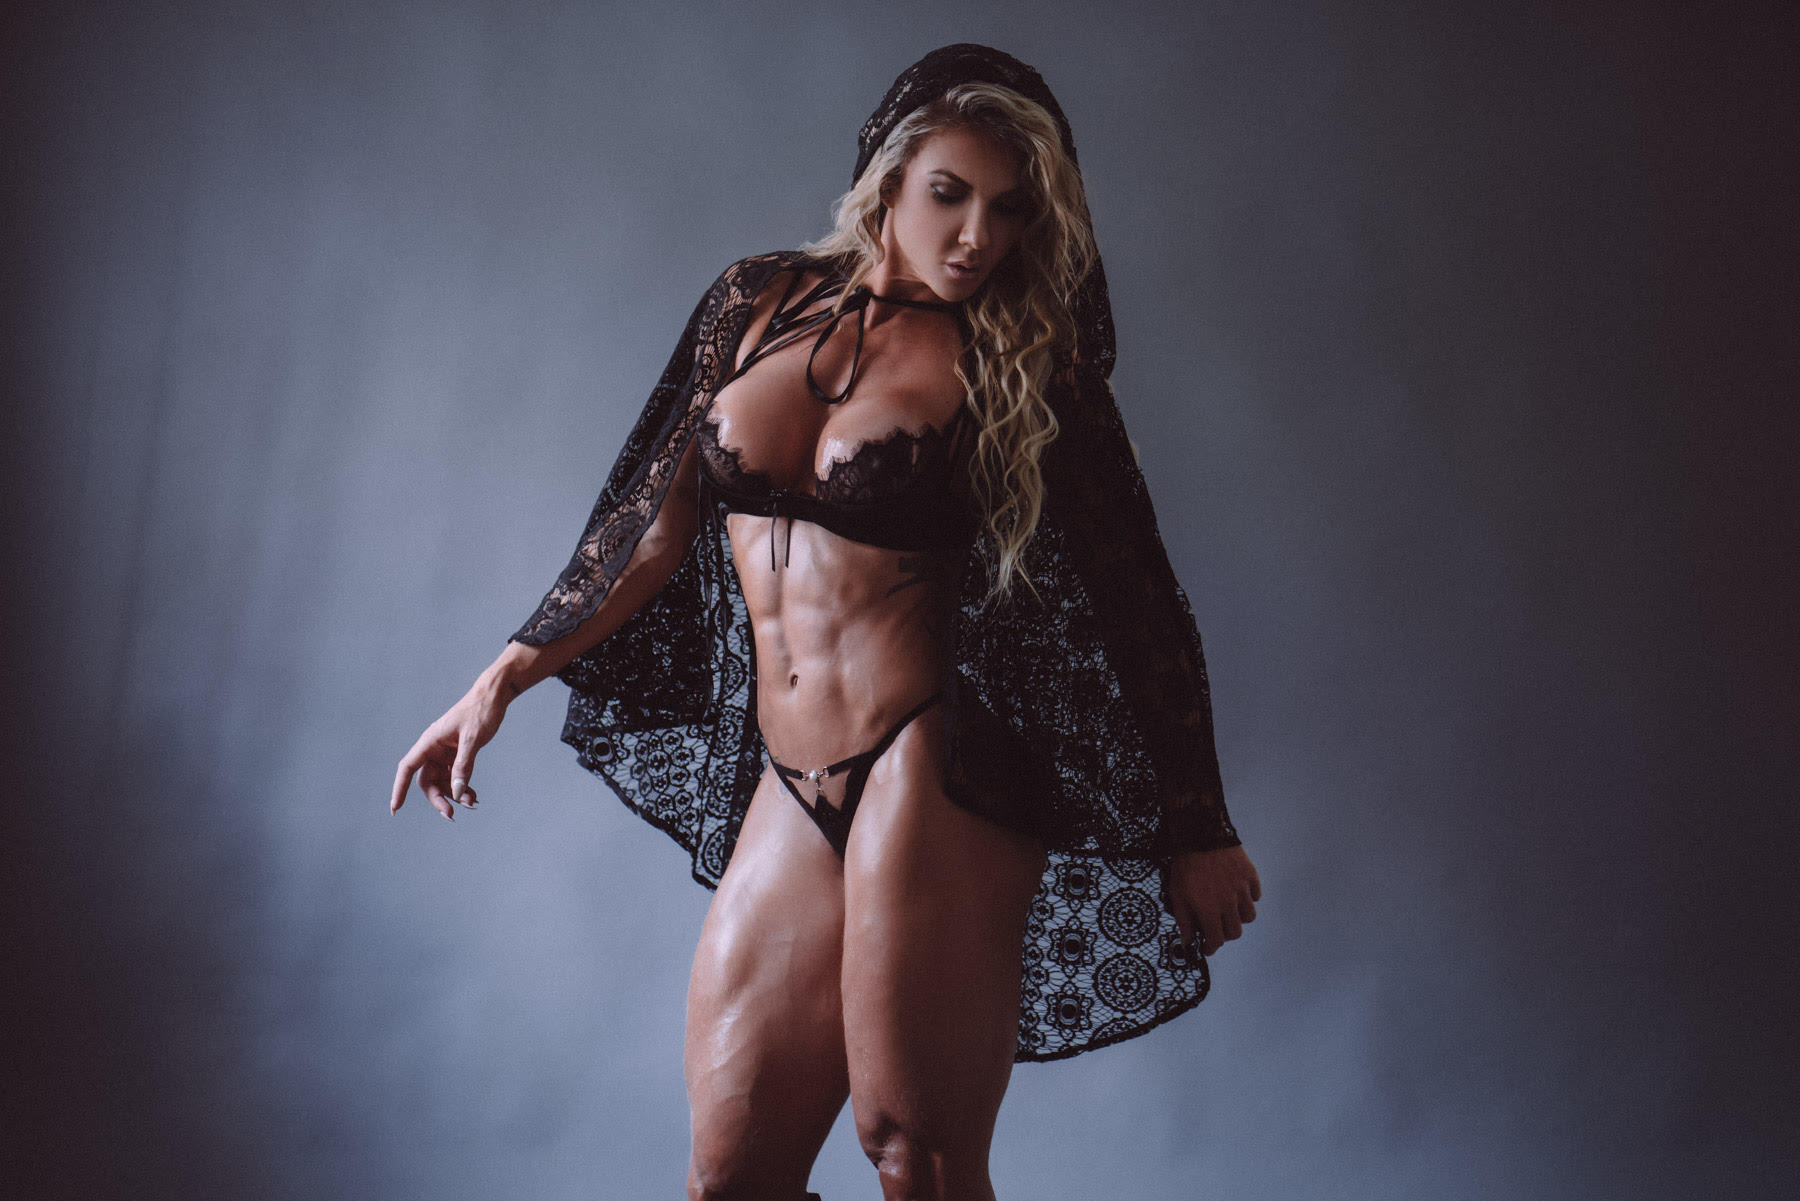 Elaine Ranzatto - Sexy Women Bodybuilder - Fitness Model